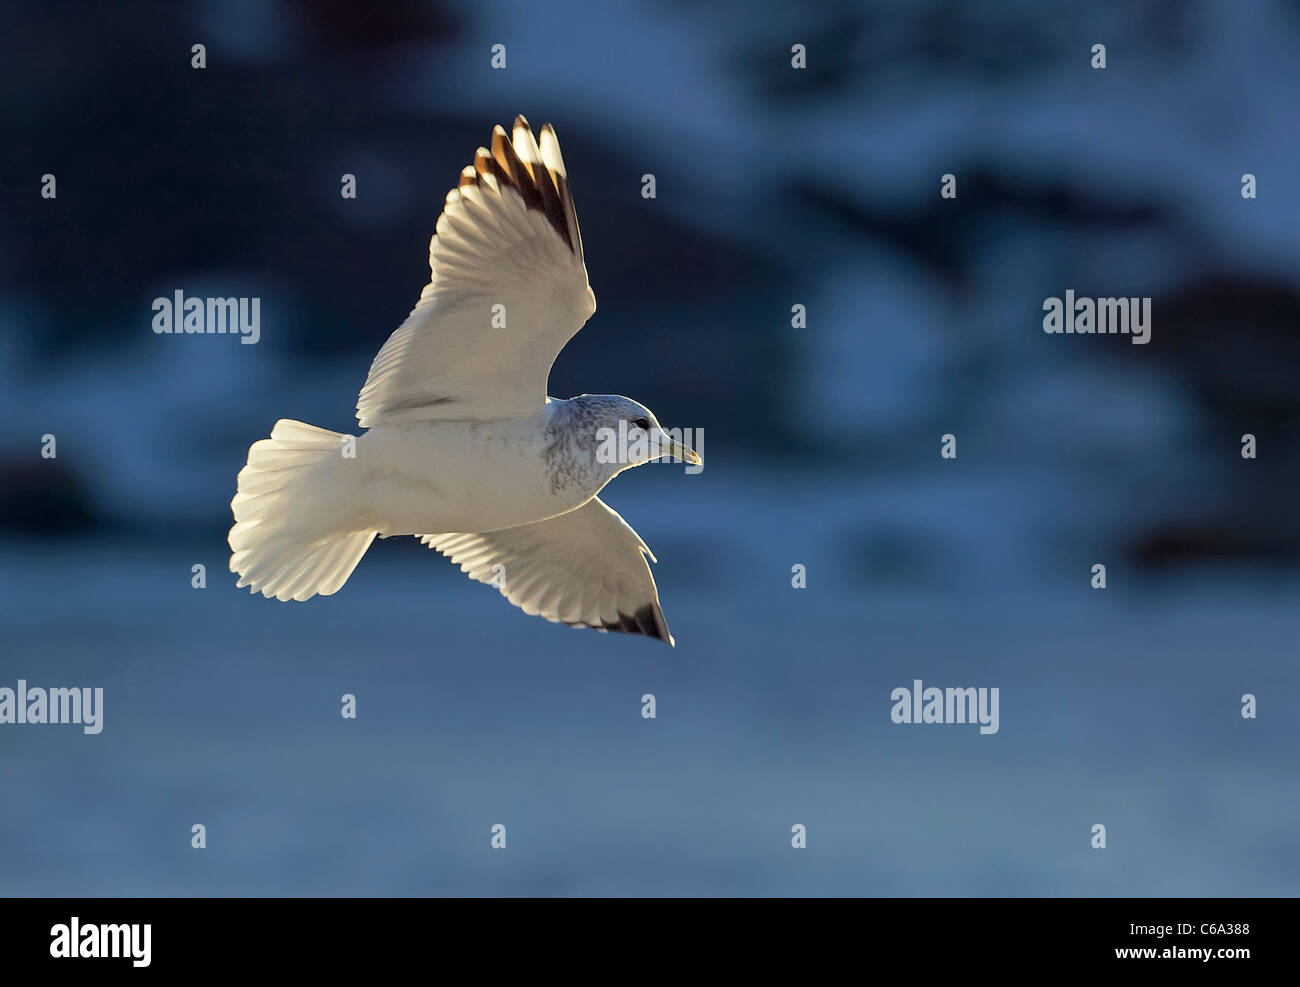 Common Gull (Larus canus) in non-breeding plumage in flight. - Stock Image